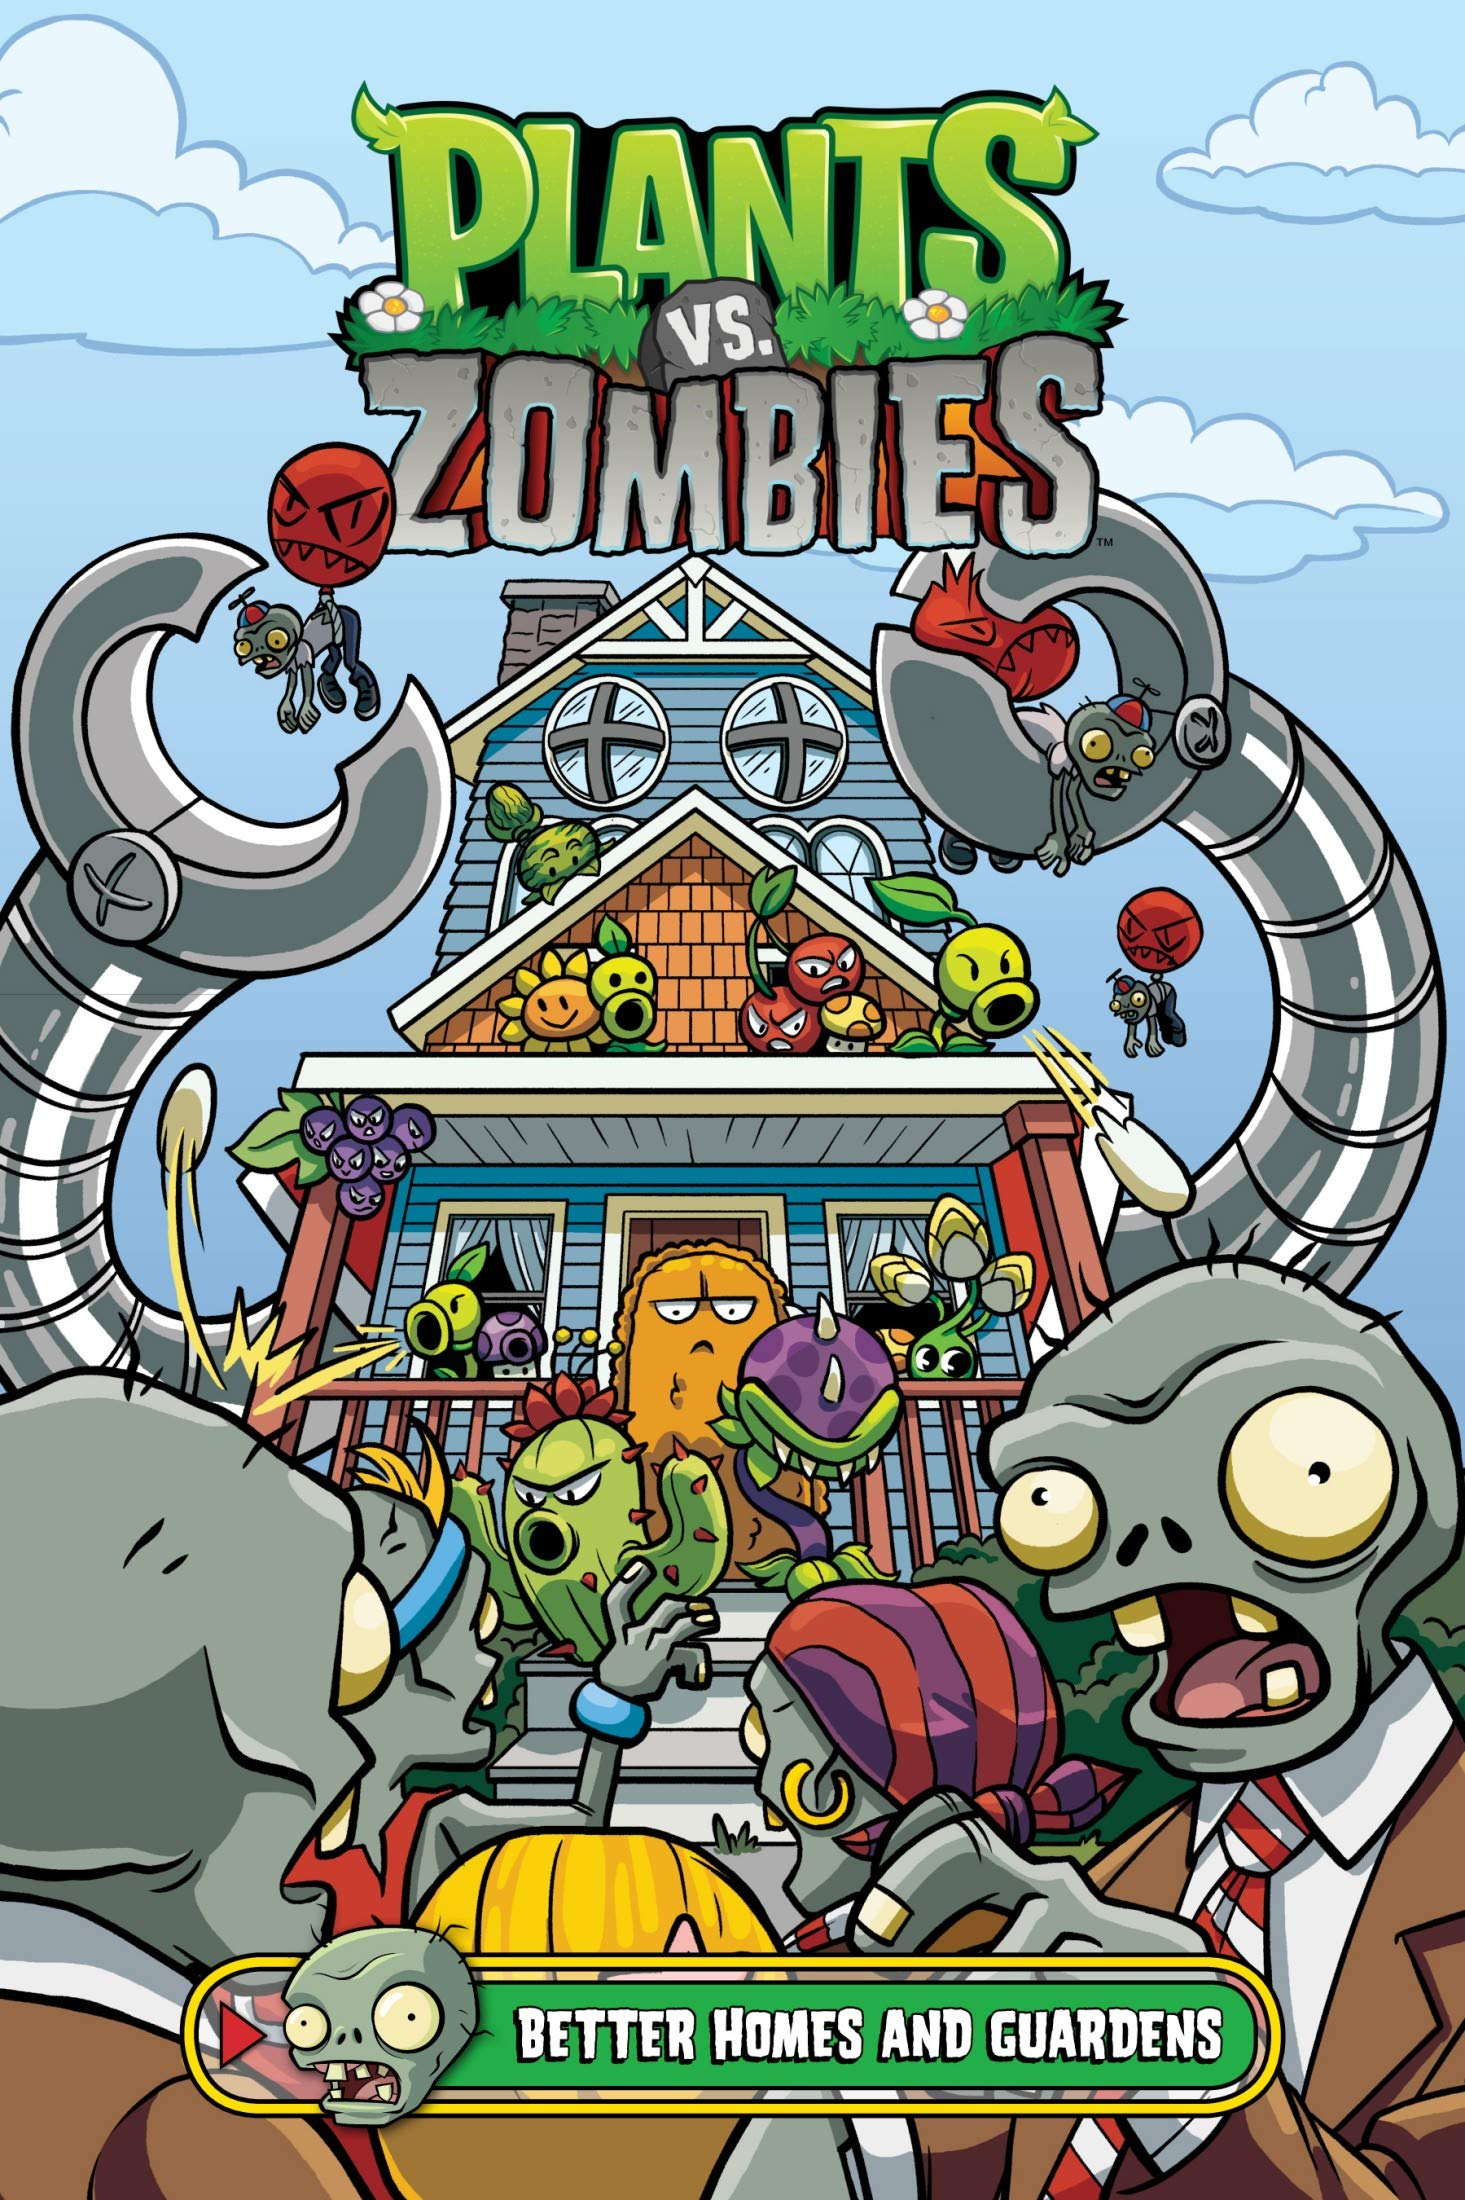 Plants: vs Zombies - Vol 15 Great Cartoon Game Comic Graphic Novels For Young & Teens , Adults Reader